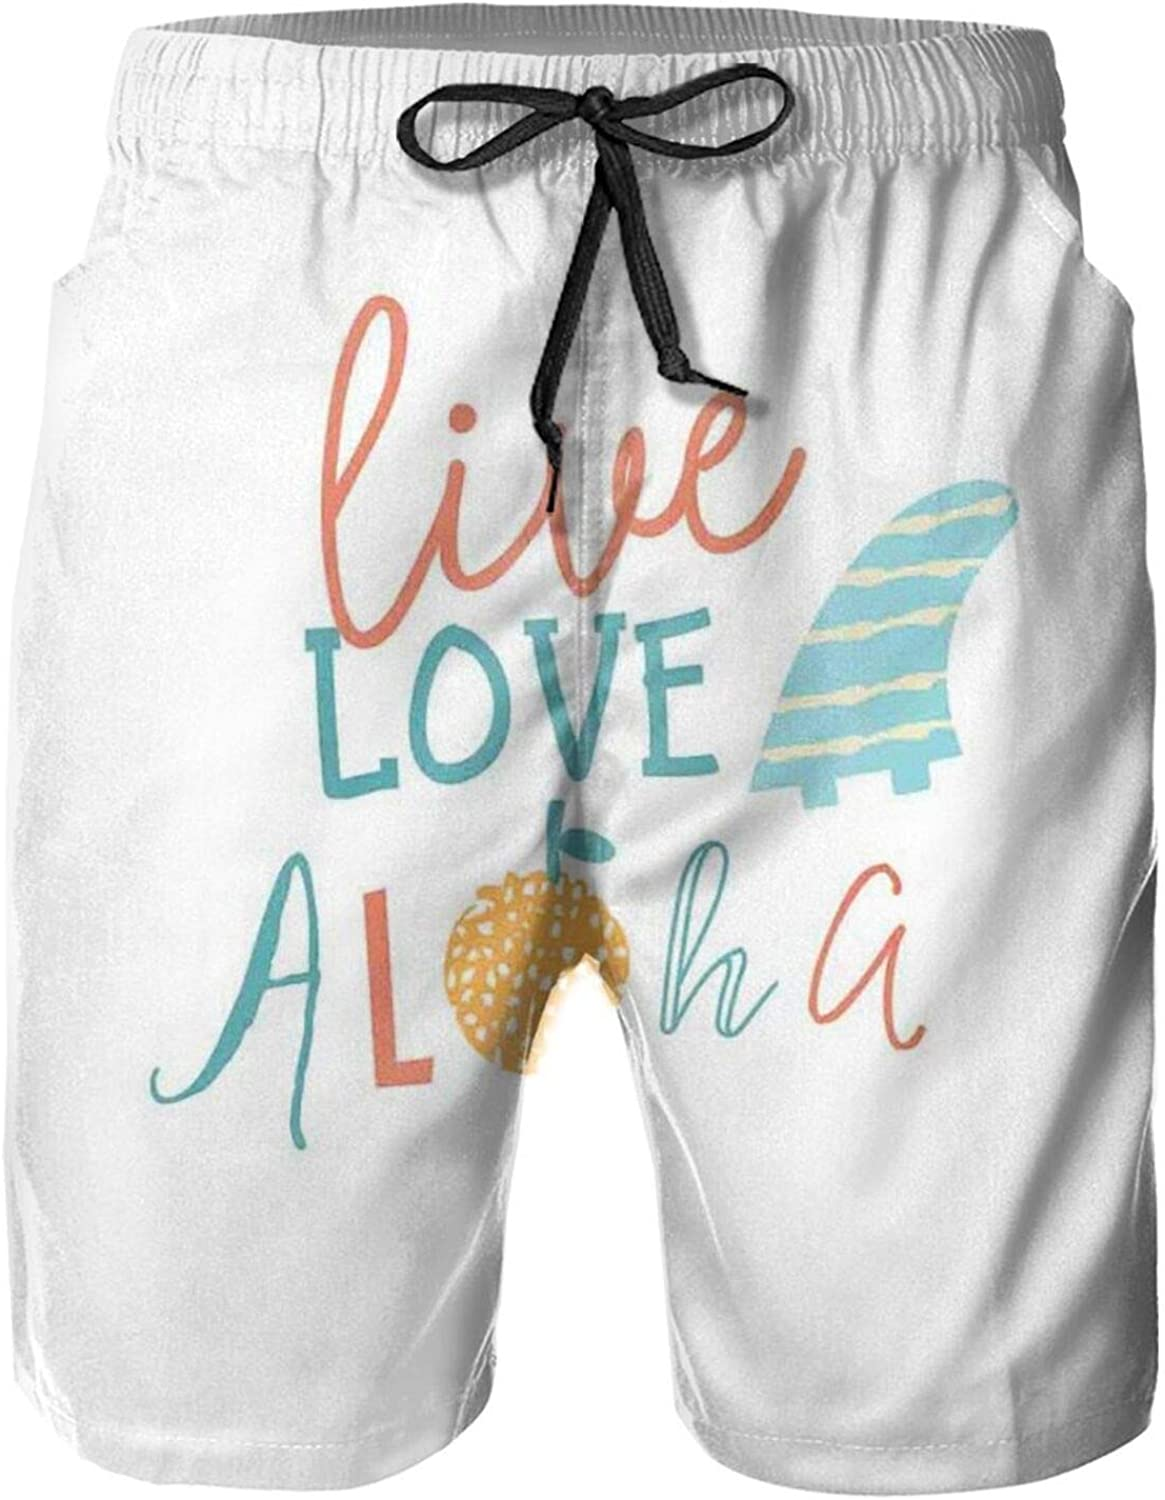 Live Love Aloha Inspirational Text Quote with Abstract Fruit Swimming Trunks for Men Beach Shorts Casual Style,XL